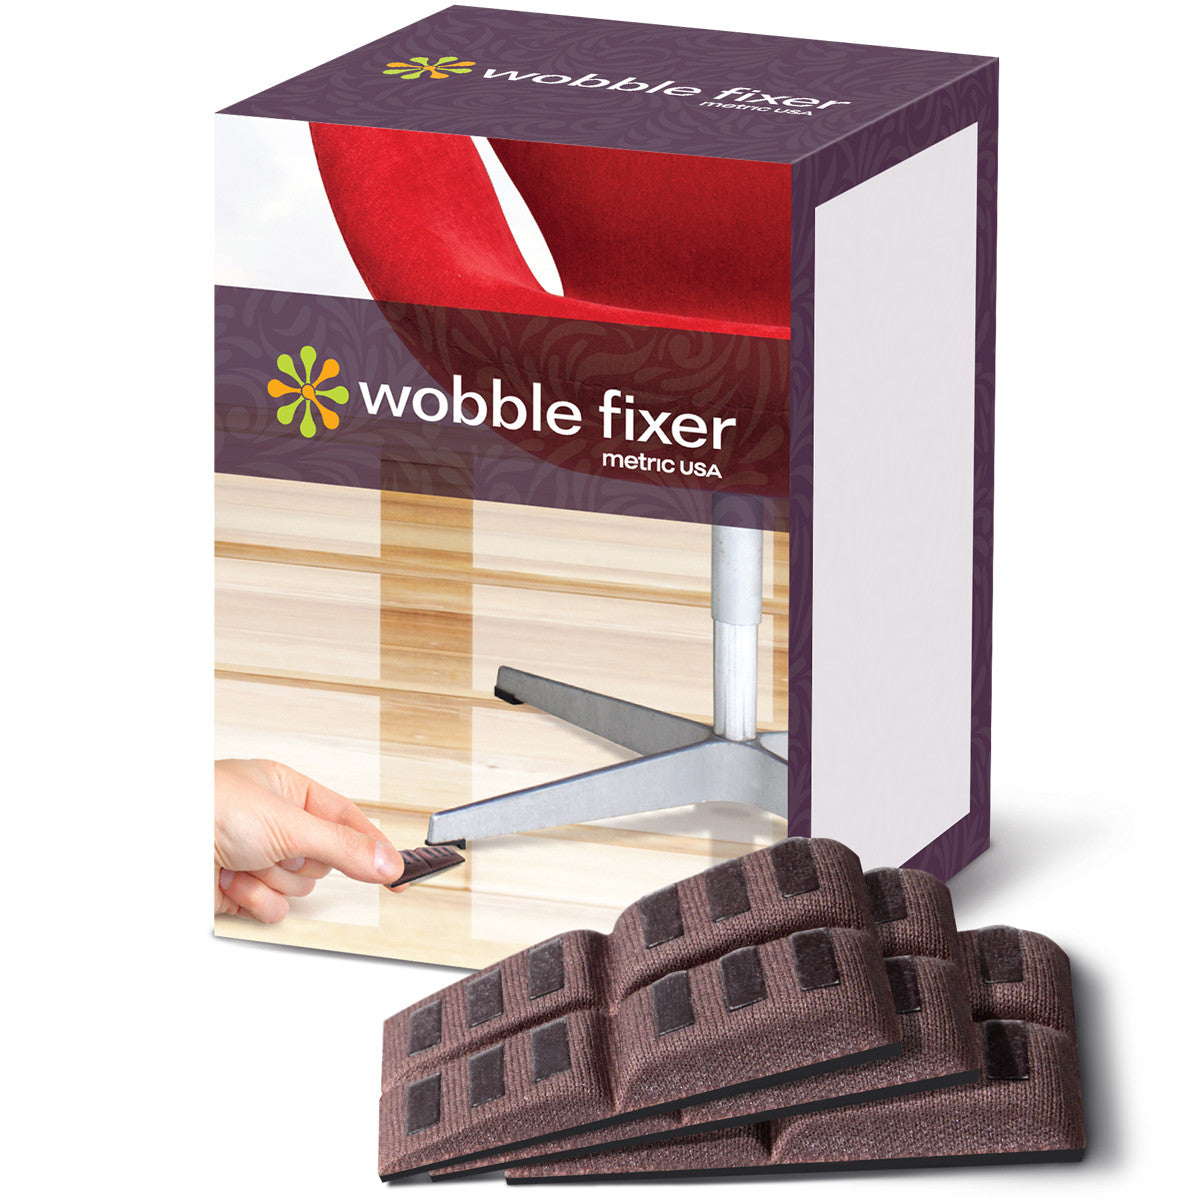 https://shopmetricusa.com/products/table-leg-levelers-by-wobble-fixer-metric-usa